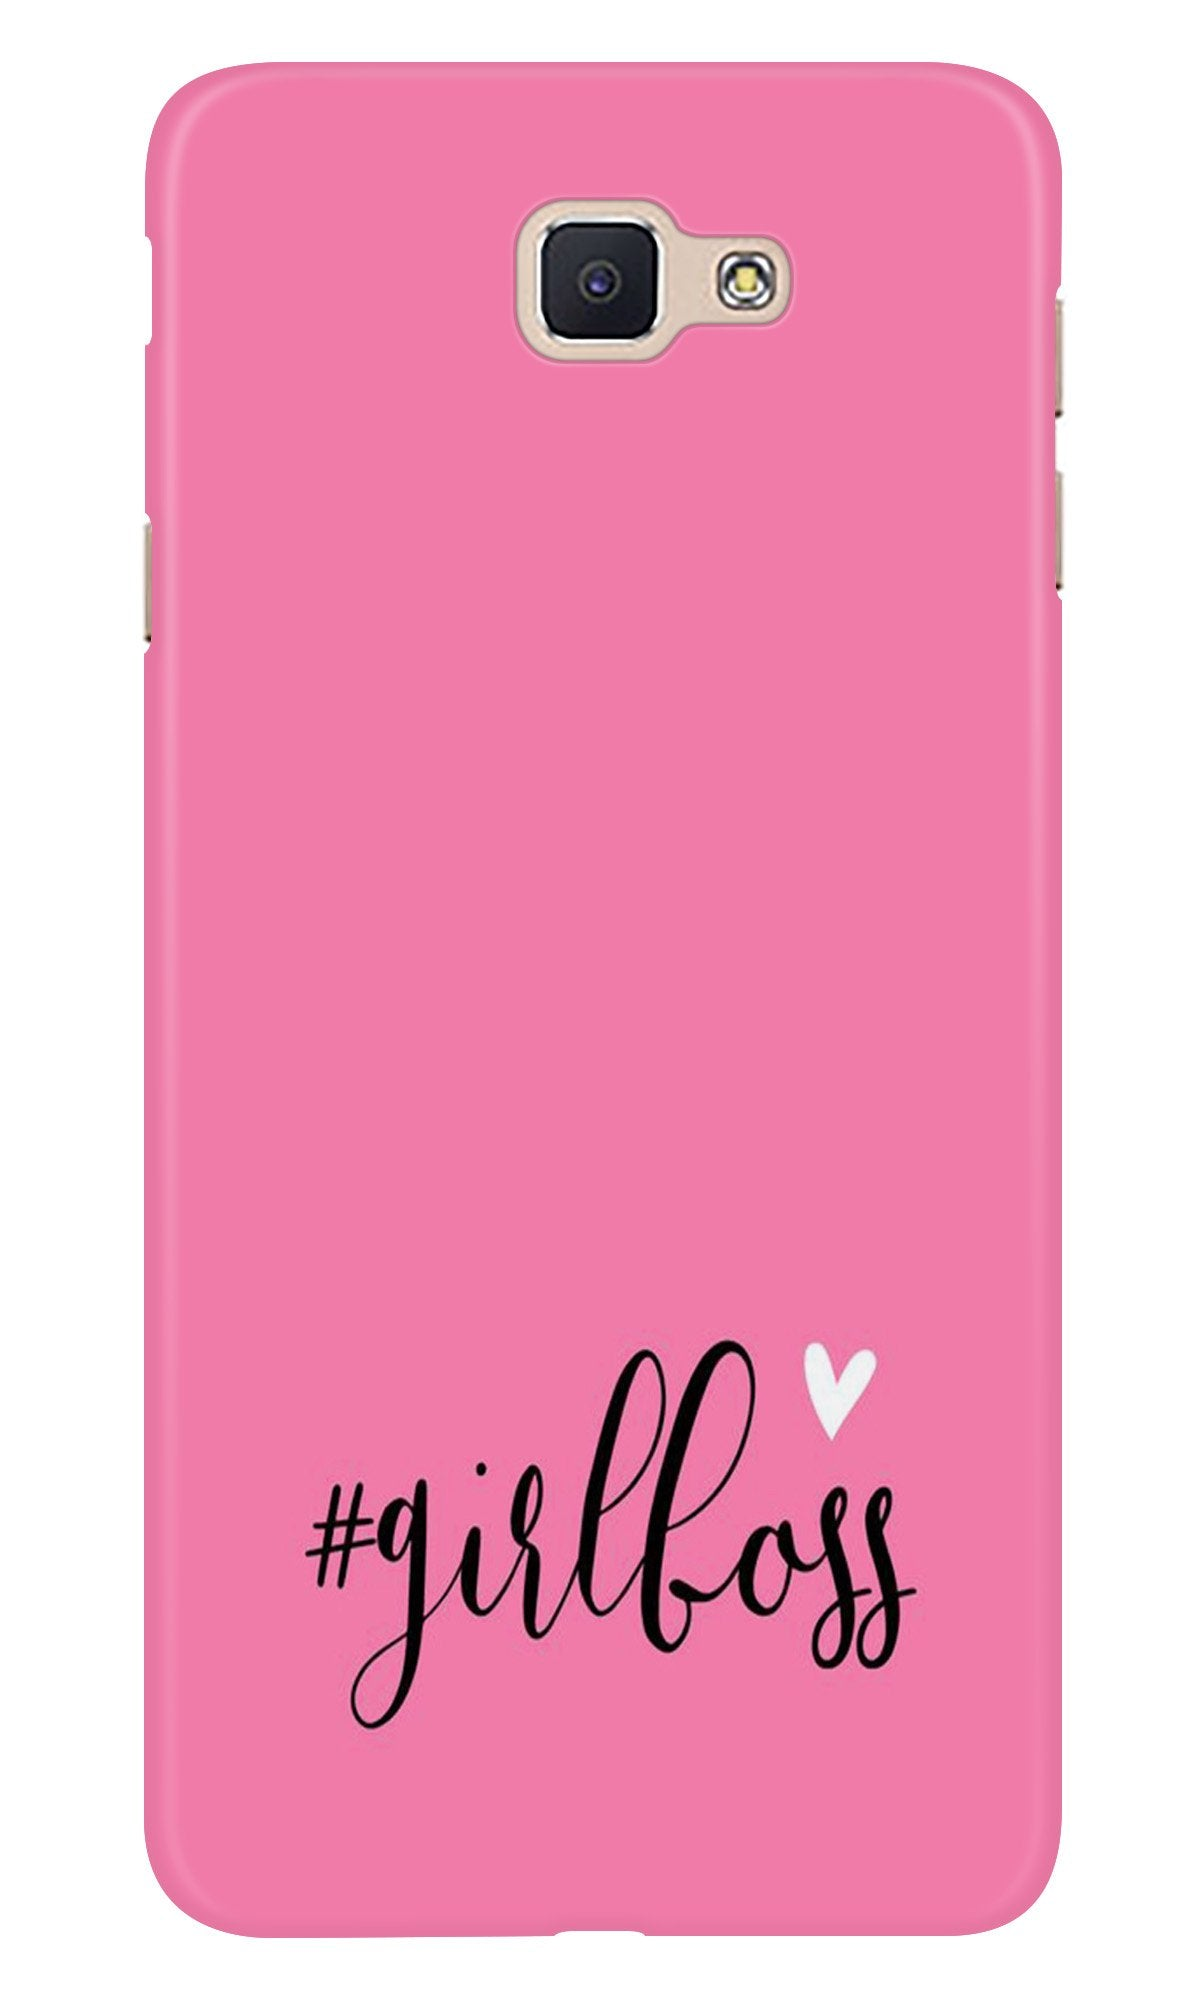 Girl Boss Pink Case for Samsung Galaxy J5 Prime (Design No. 269)